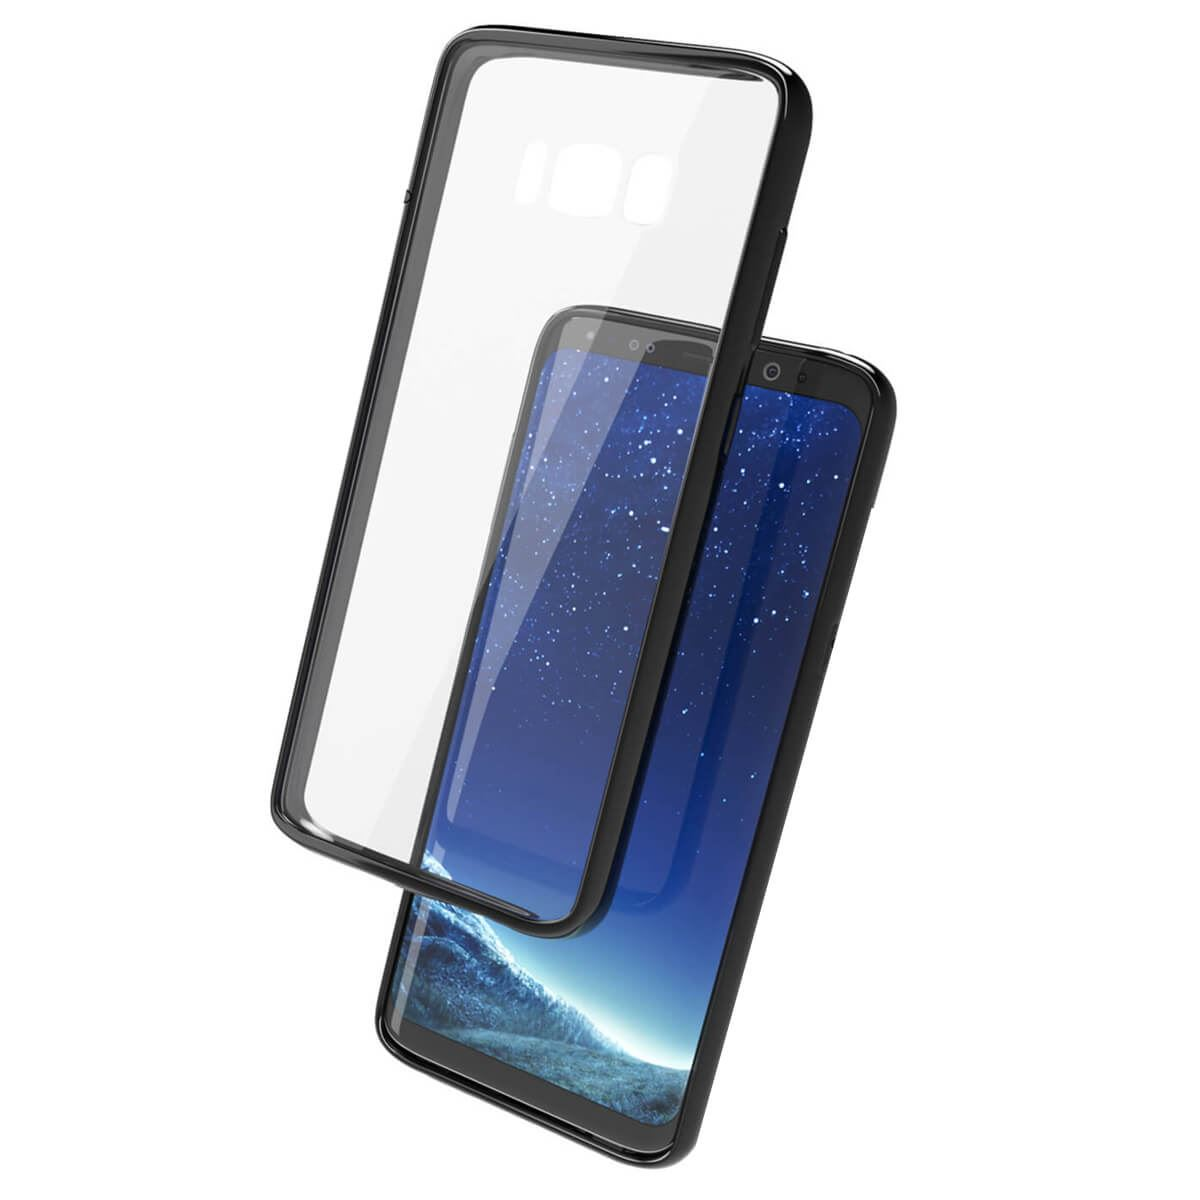 Shockproof-TPU-Bumper-Case-Samsung-Galaxy-S8-Plus-Note-8-Gel-Crystal-Clear-Cover thumbnail 4